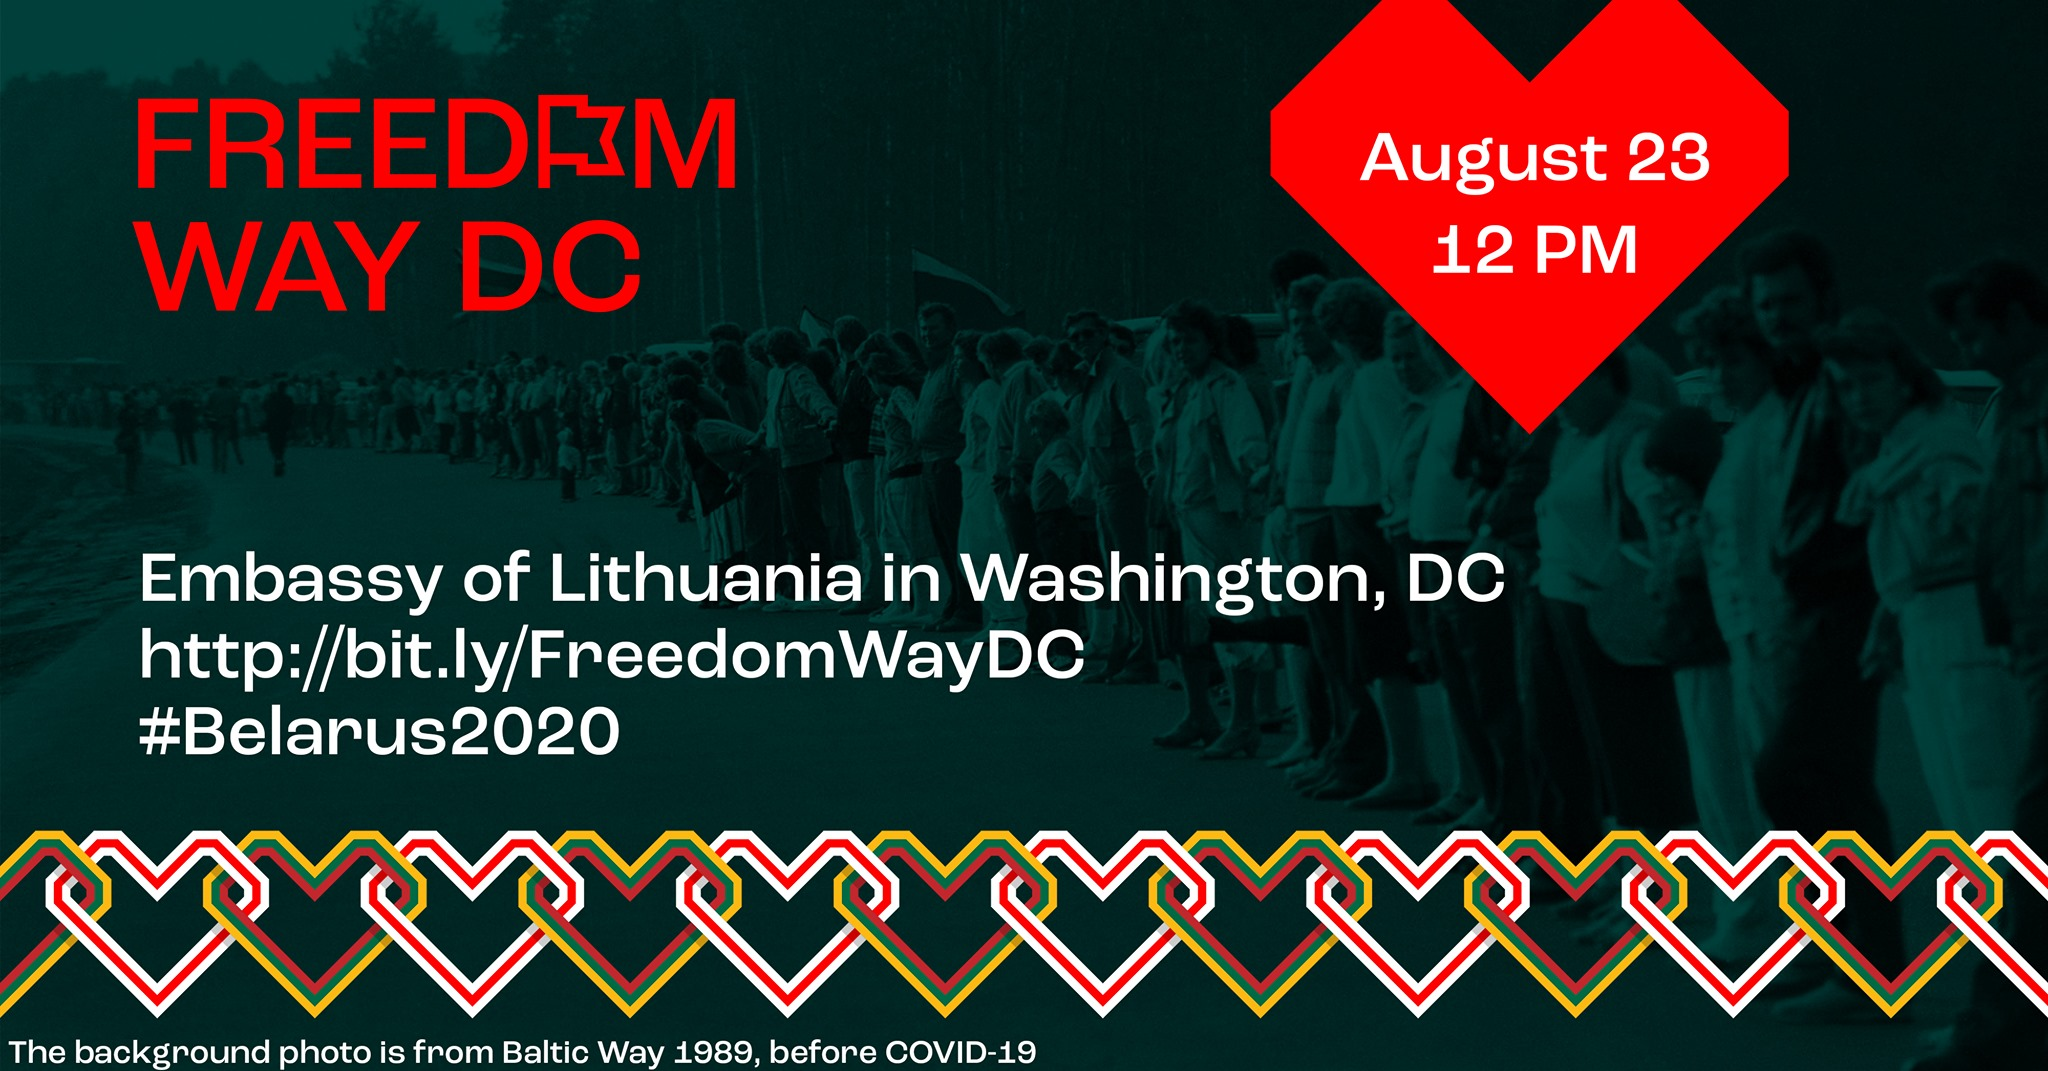 Freedom Way DC, a Socially Distanced Human Chain action to commemorate a Baltic Way protest and support People of Belarus